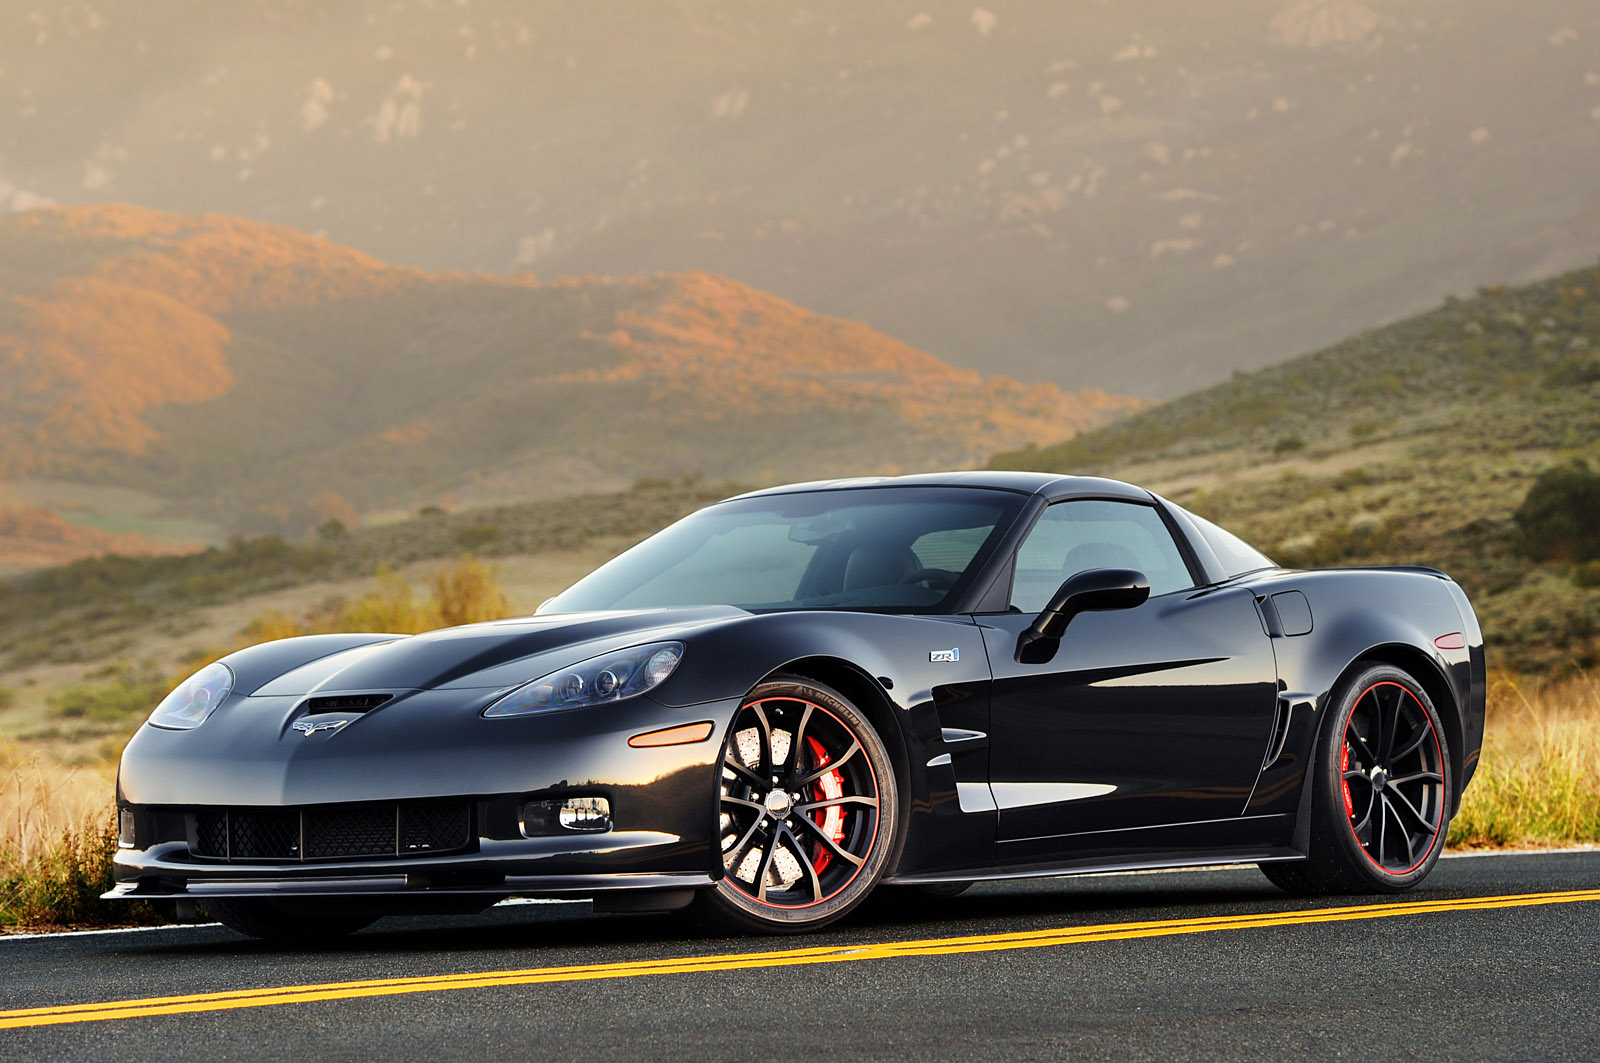 2012 Chevrolet Corvette Zr1 Review Photo Gallery Autoblog